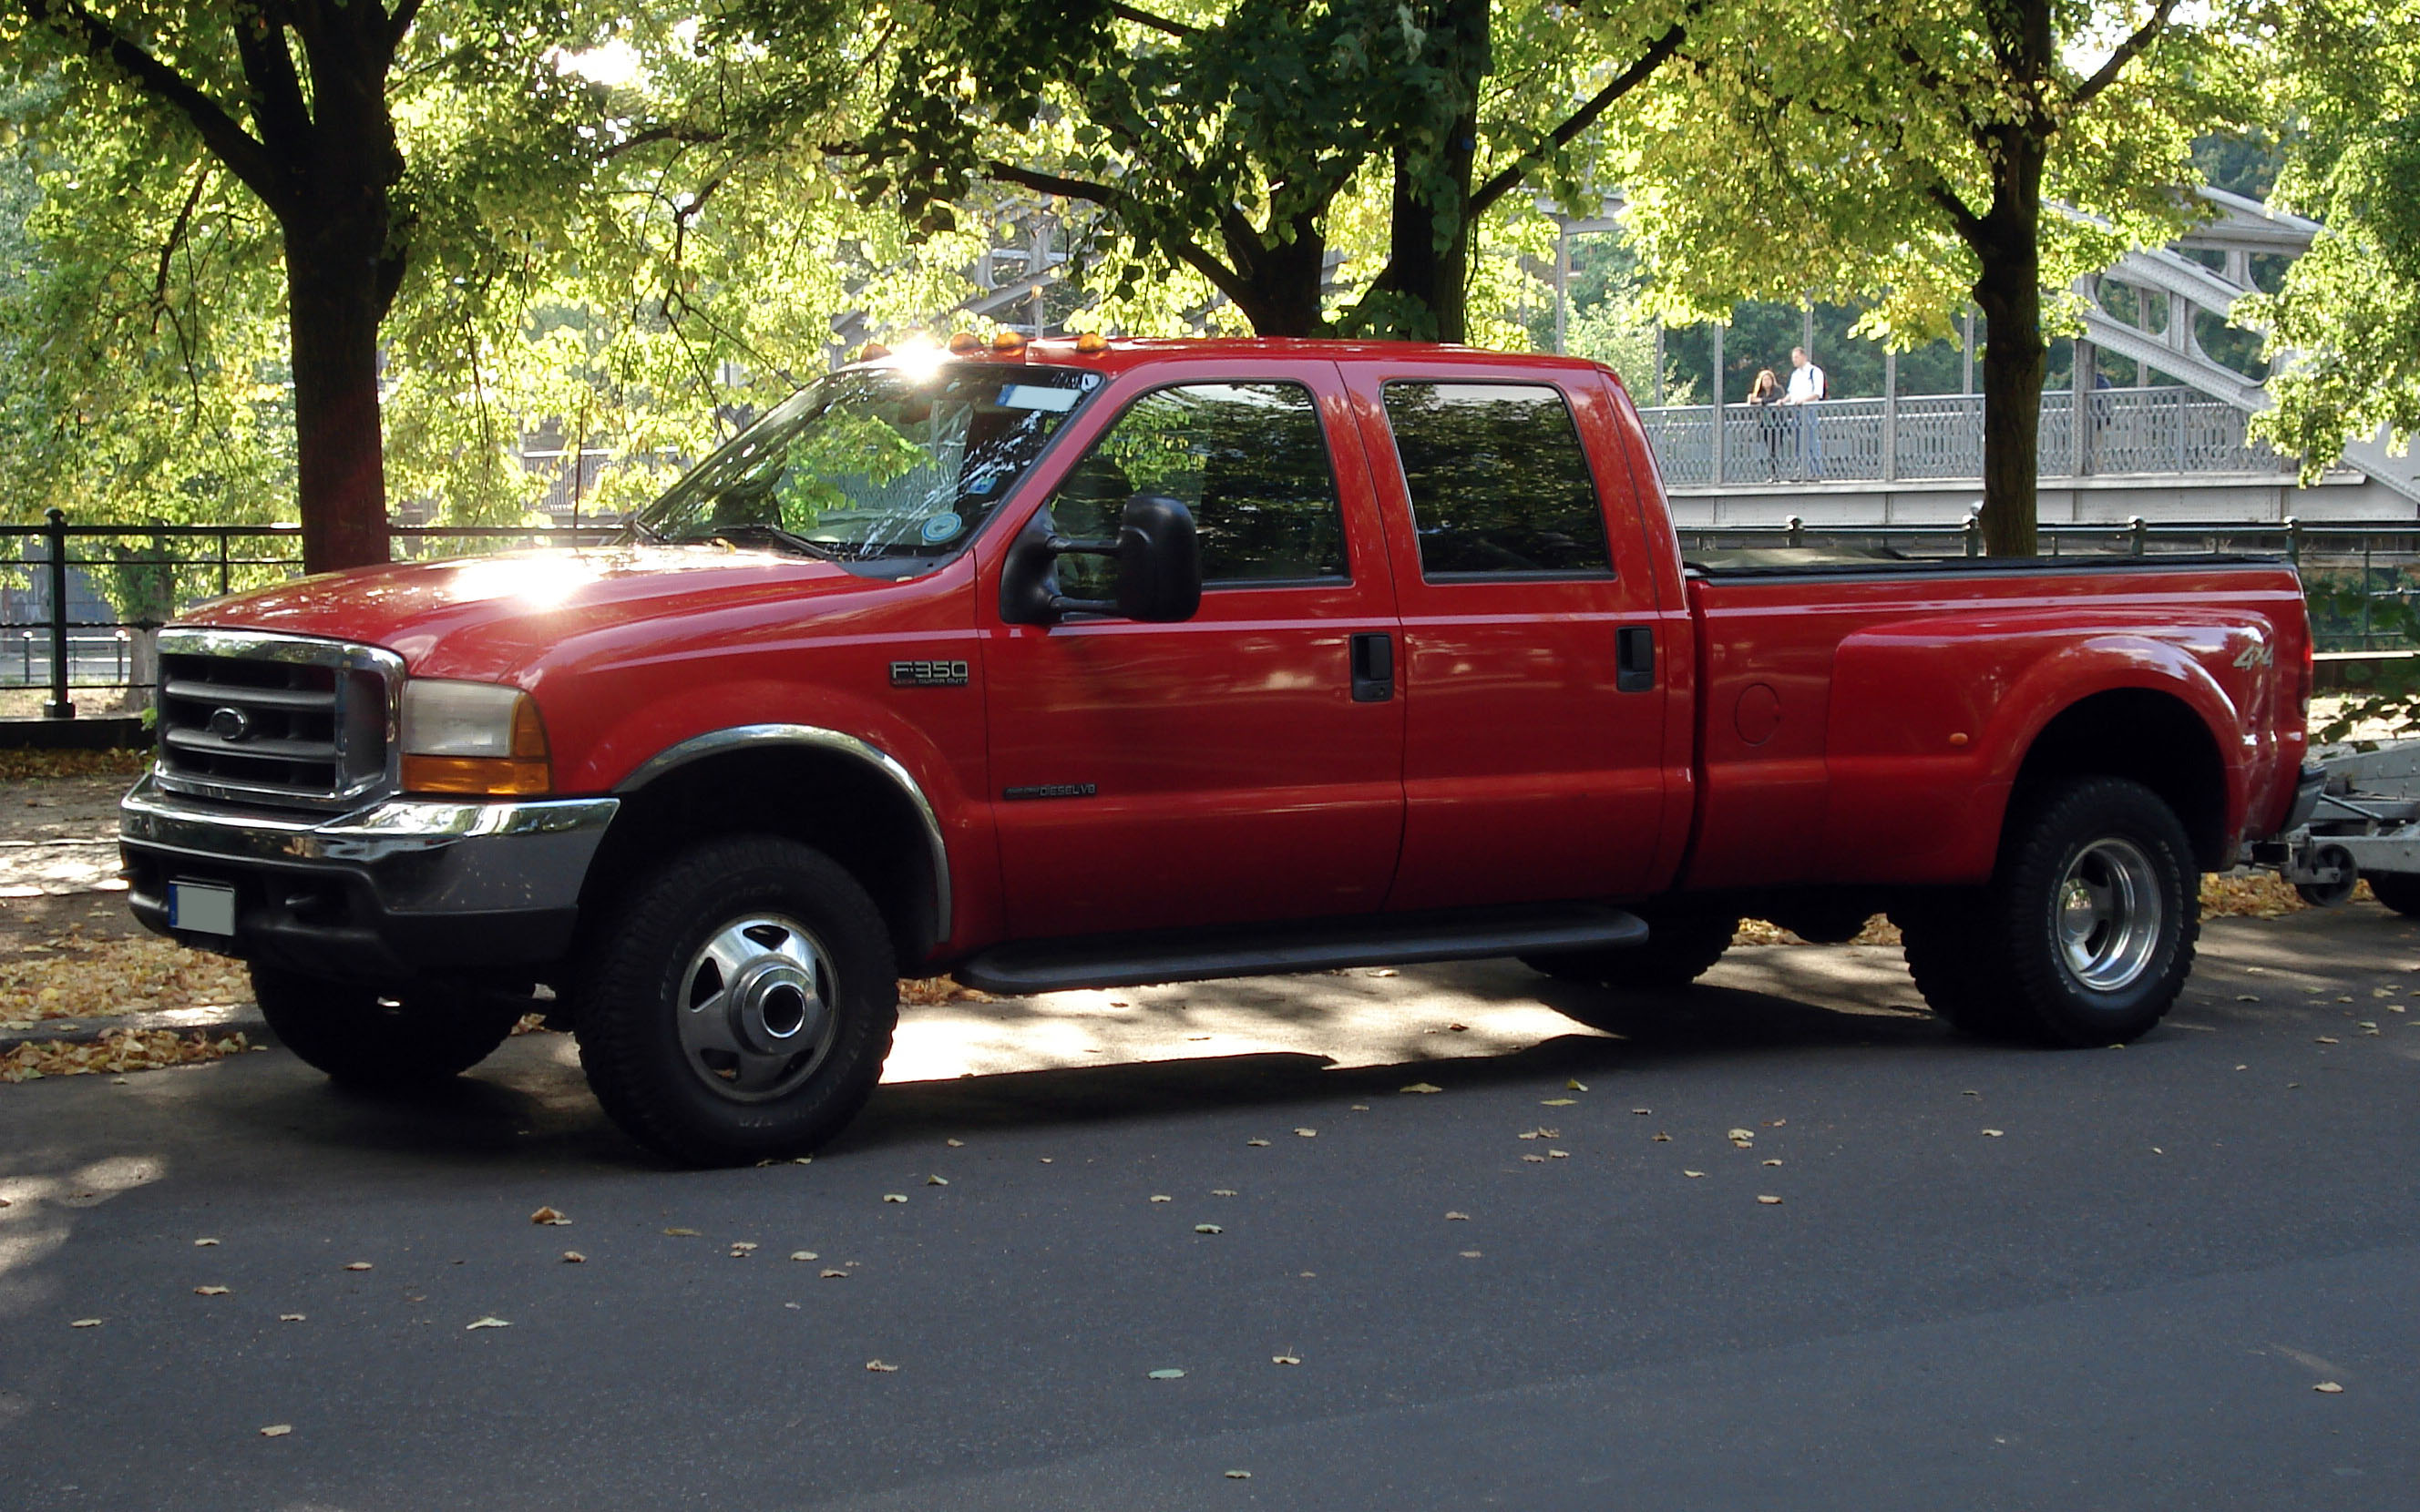 File:Red Ford F-350.jpg